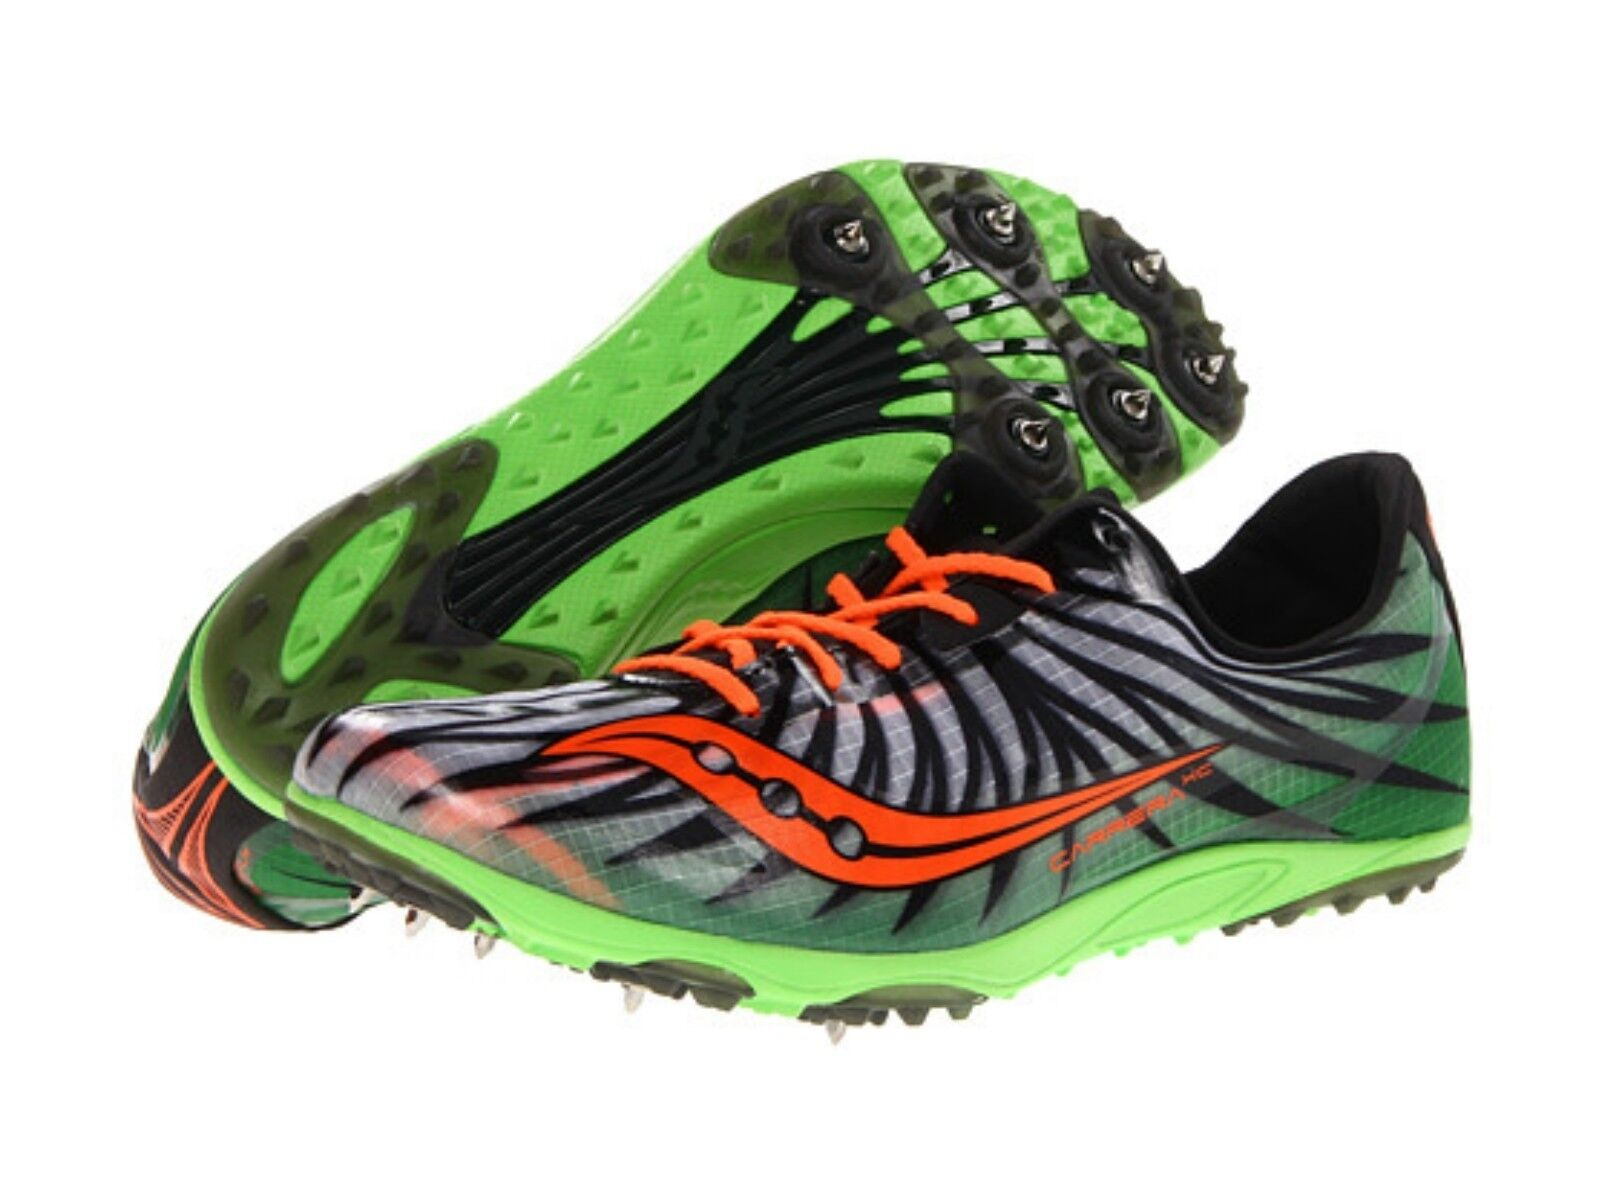 Uomo Saucony Carrera XC Slime Green Orange Spike Running Athletic Shoe Size 13 14